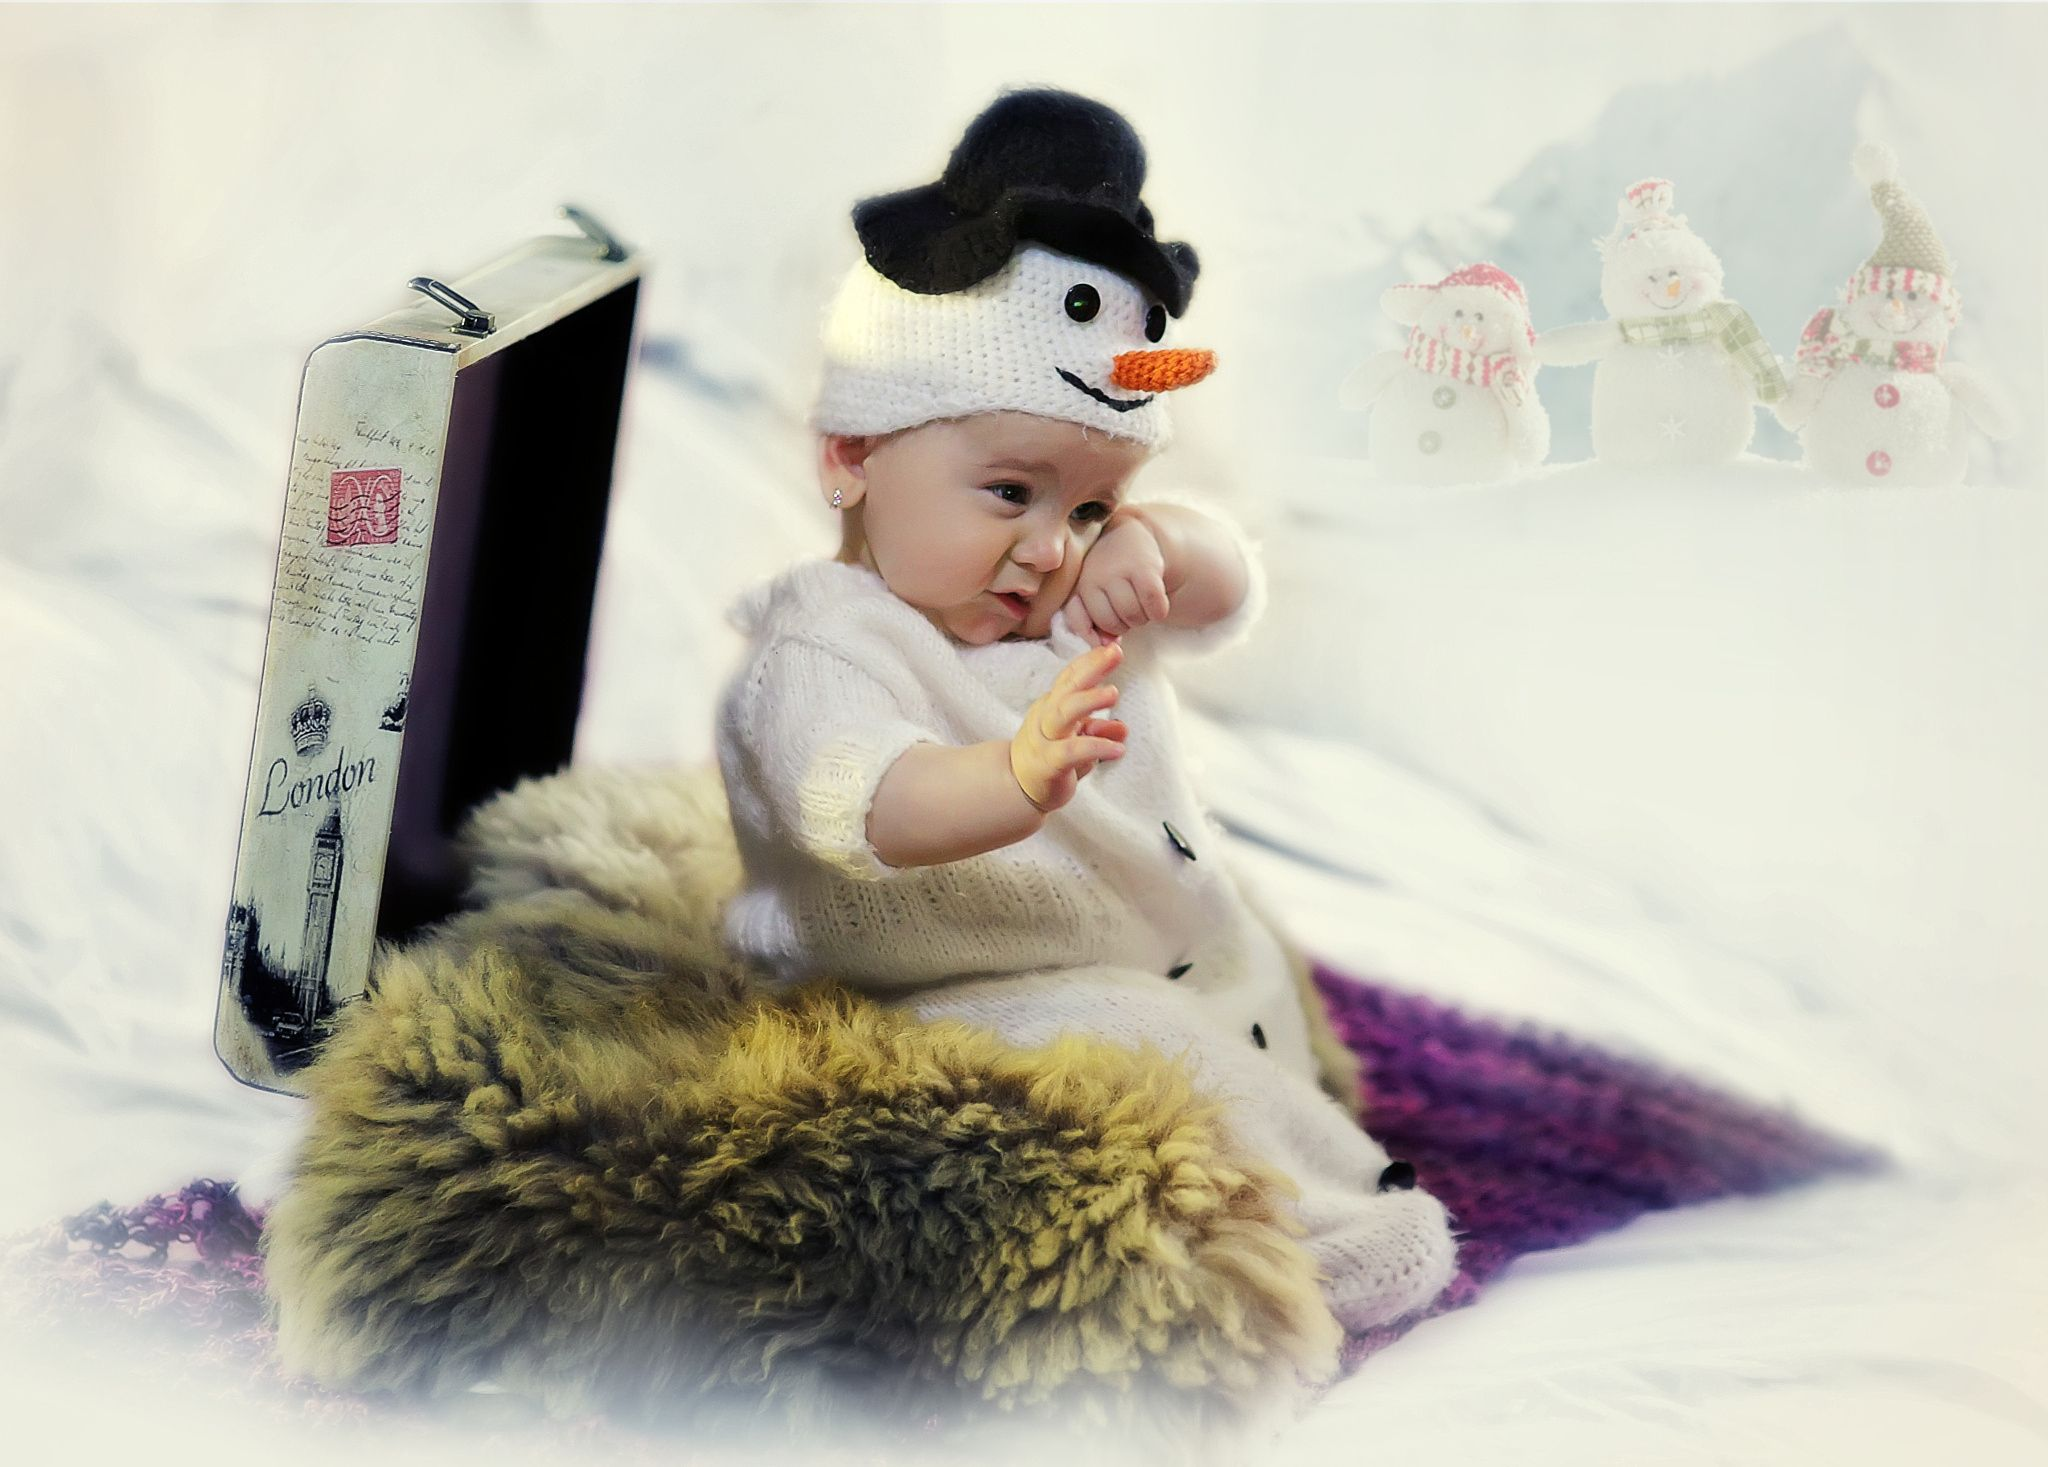 The little sleepy snowman by Alexandru Vilceanu on 500px